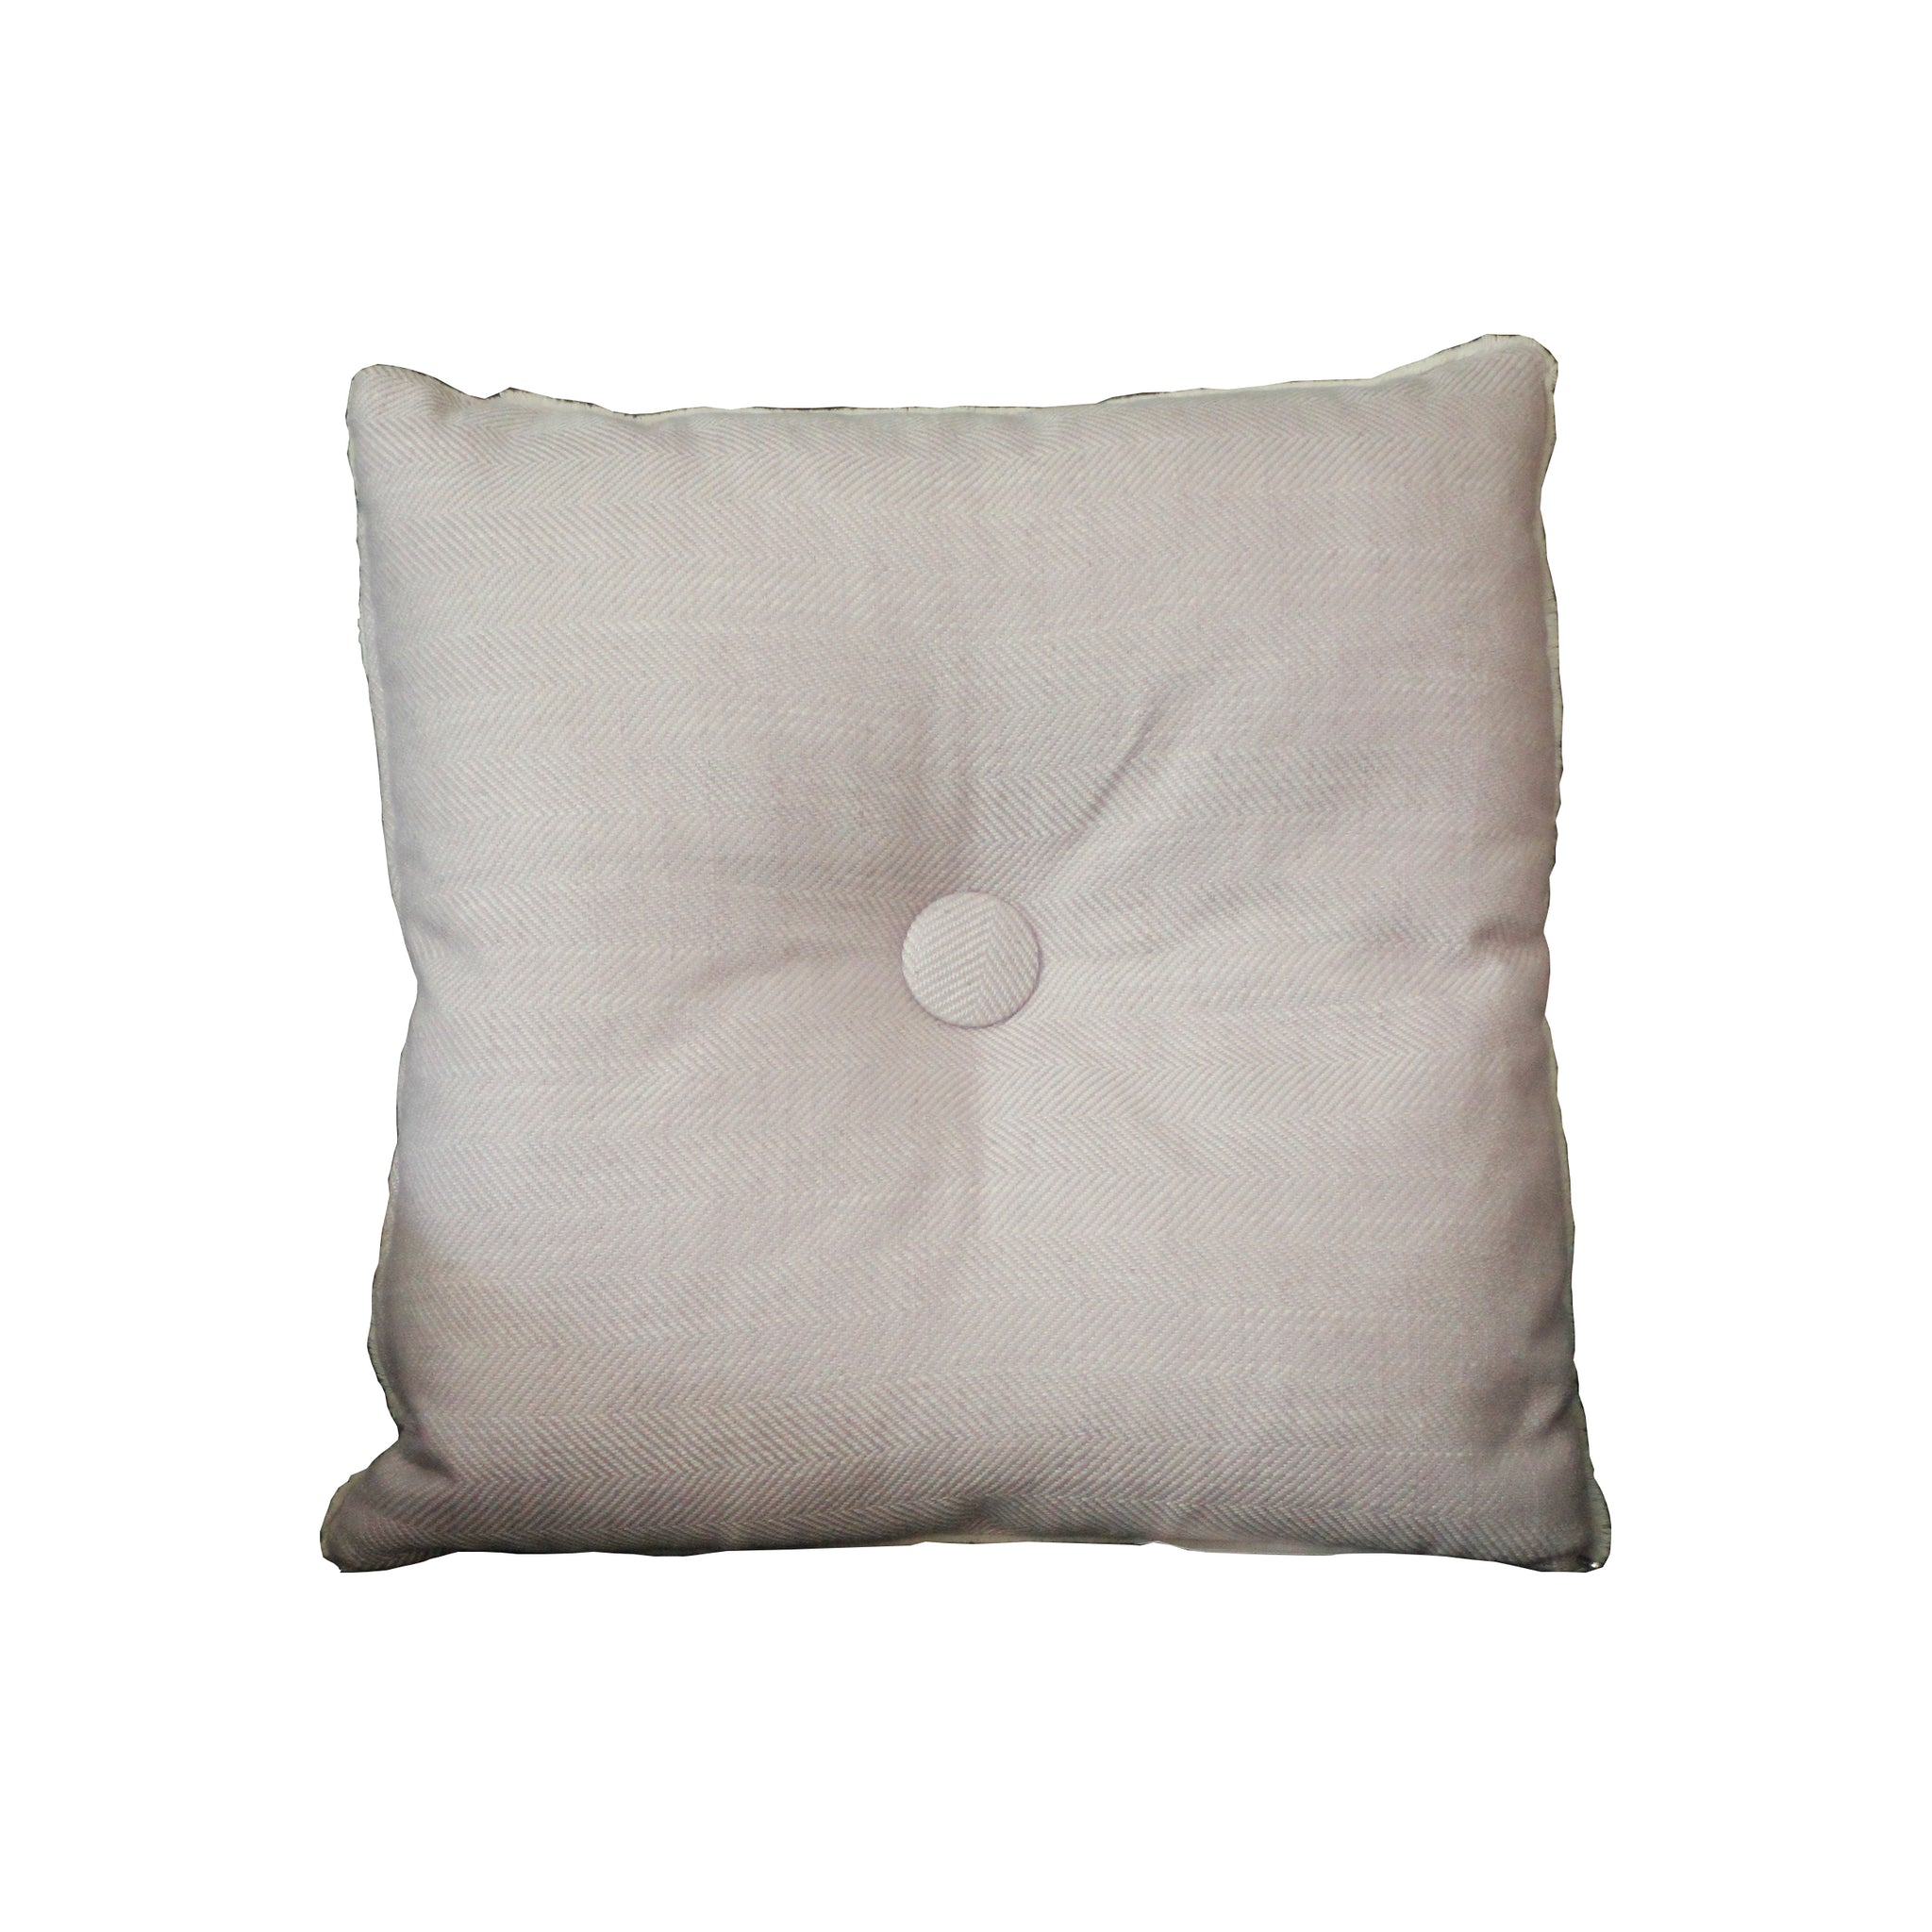 Hawthorne House Bespoke 20 x 20 pillow in Lilac Herringbone linen